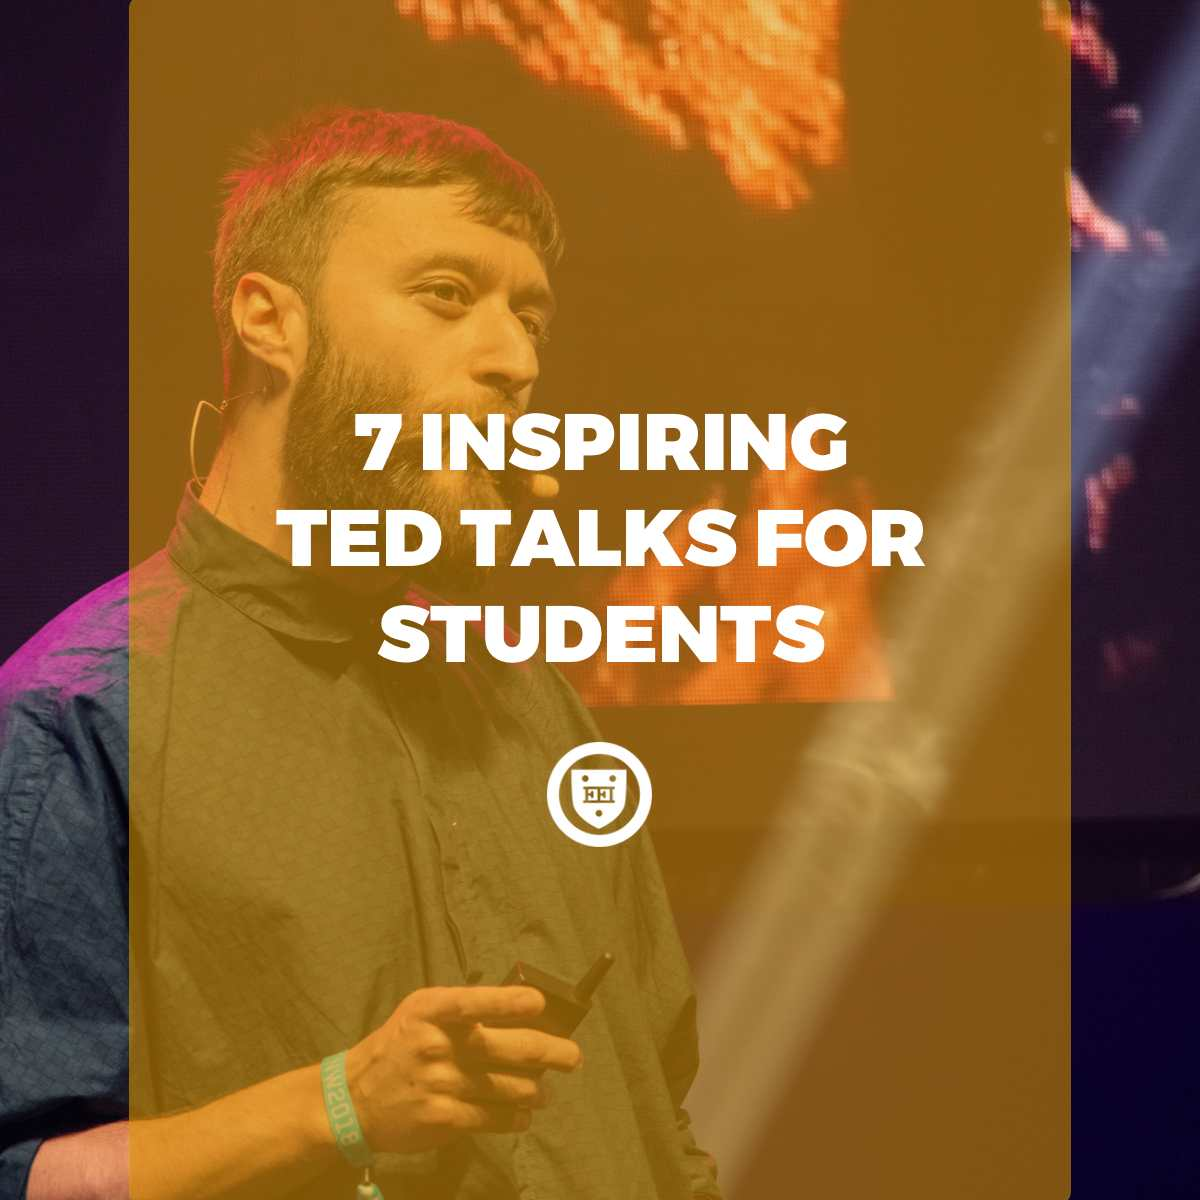 Best Ted Talks 2021 7 Inspiring TED Talks for Students — Elite Educational Institute